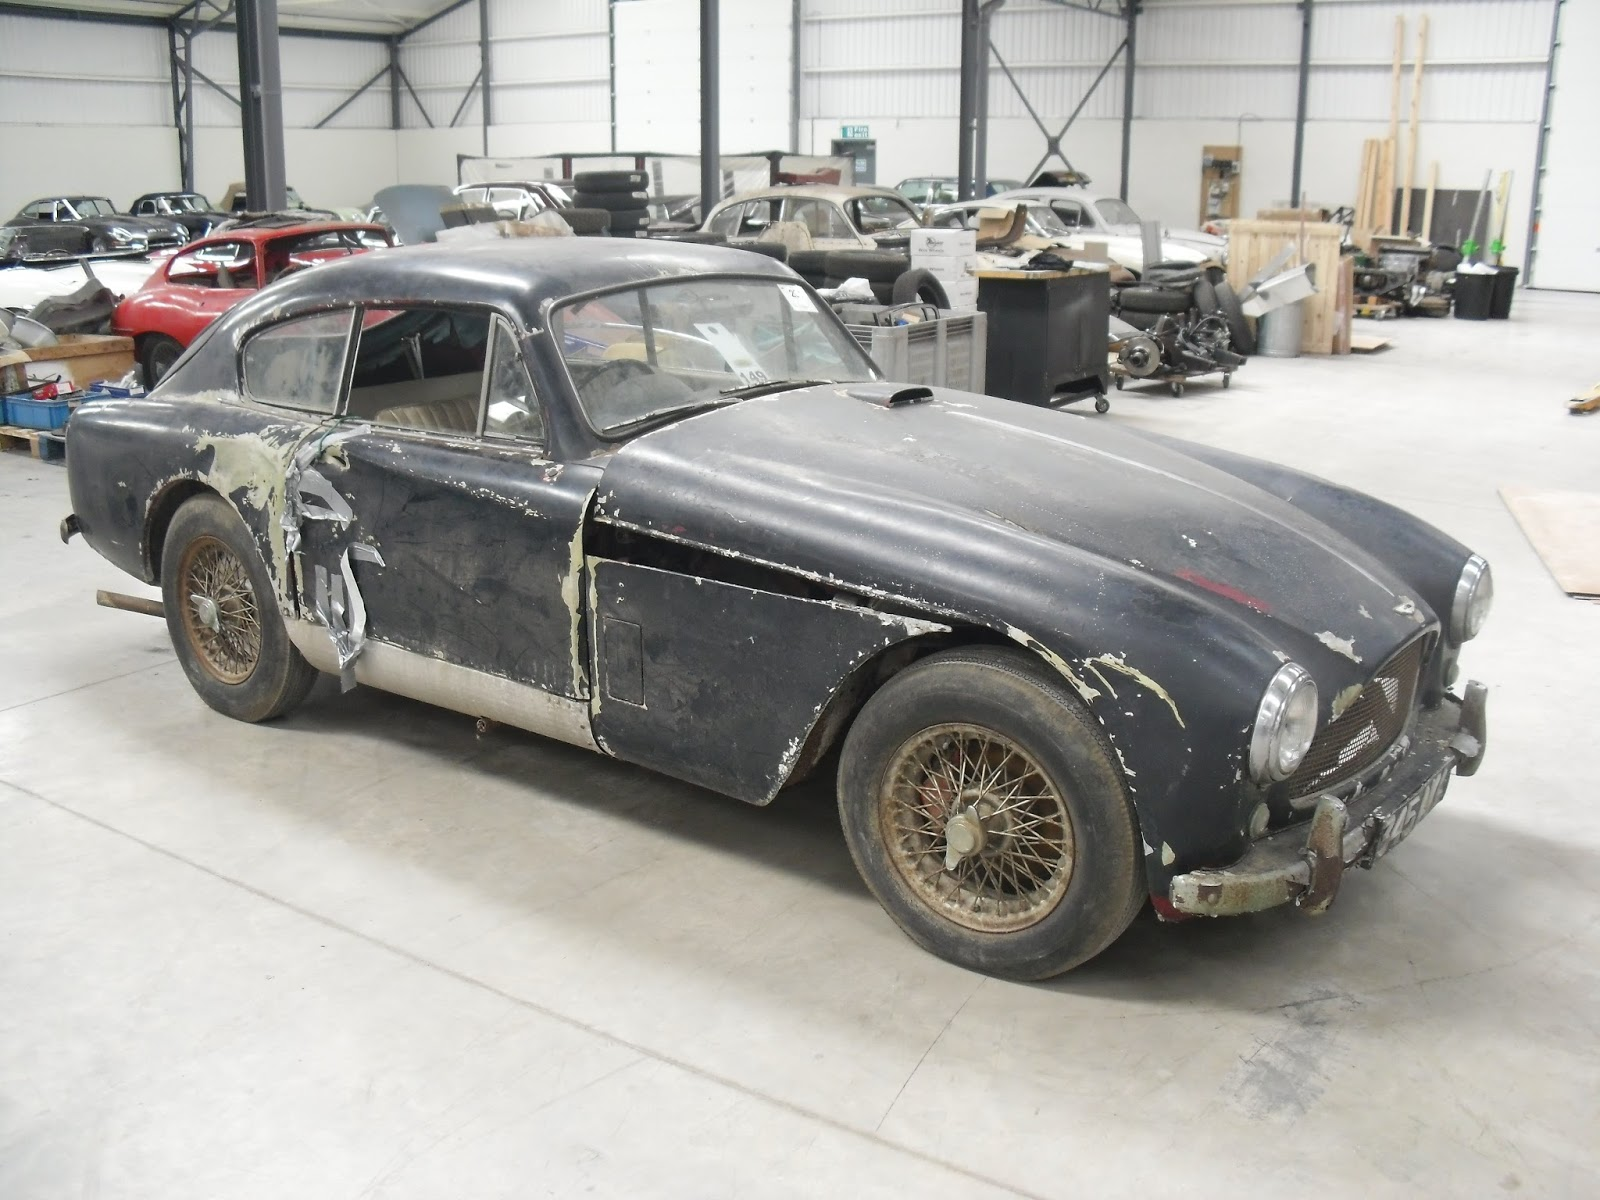 Barn Find DB2 4 Restoration Begins